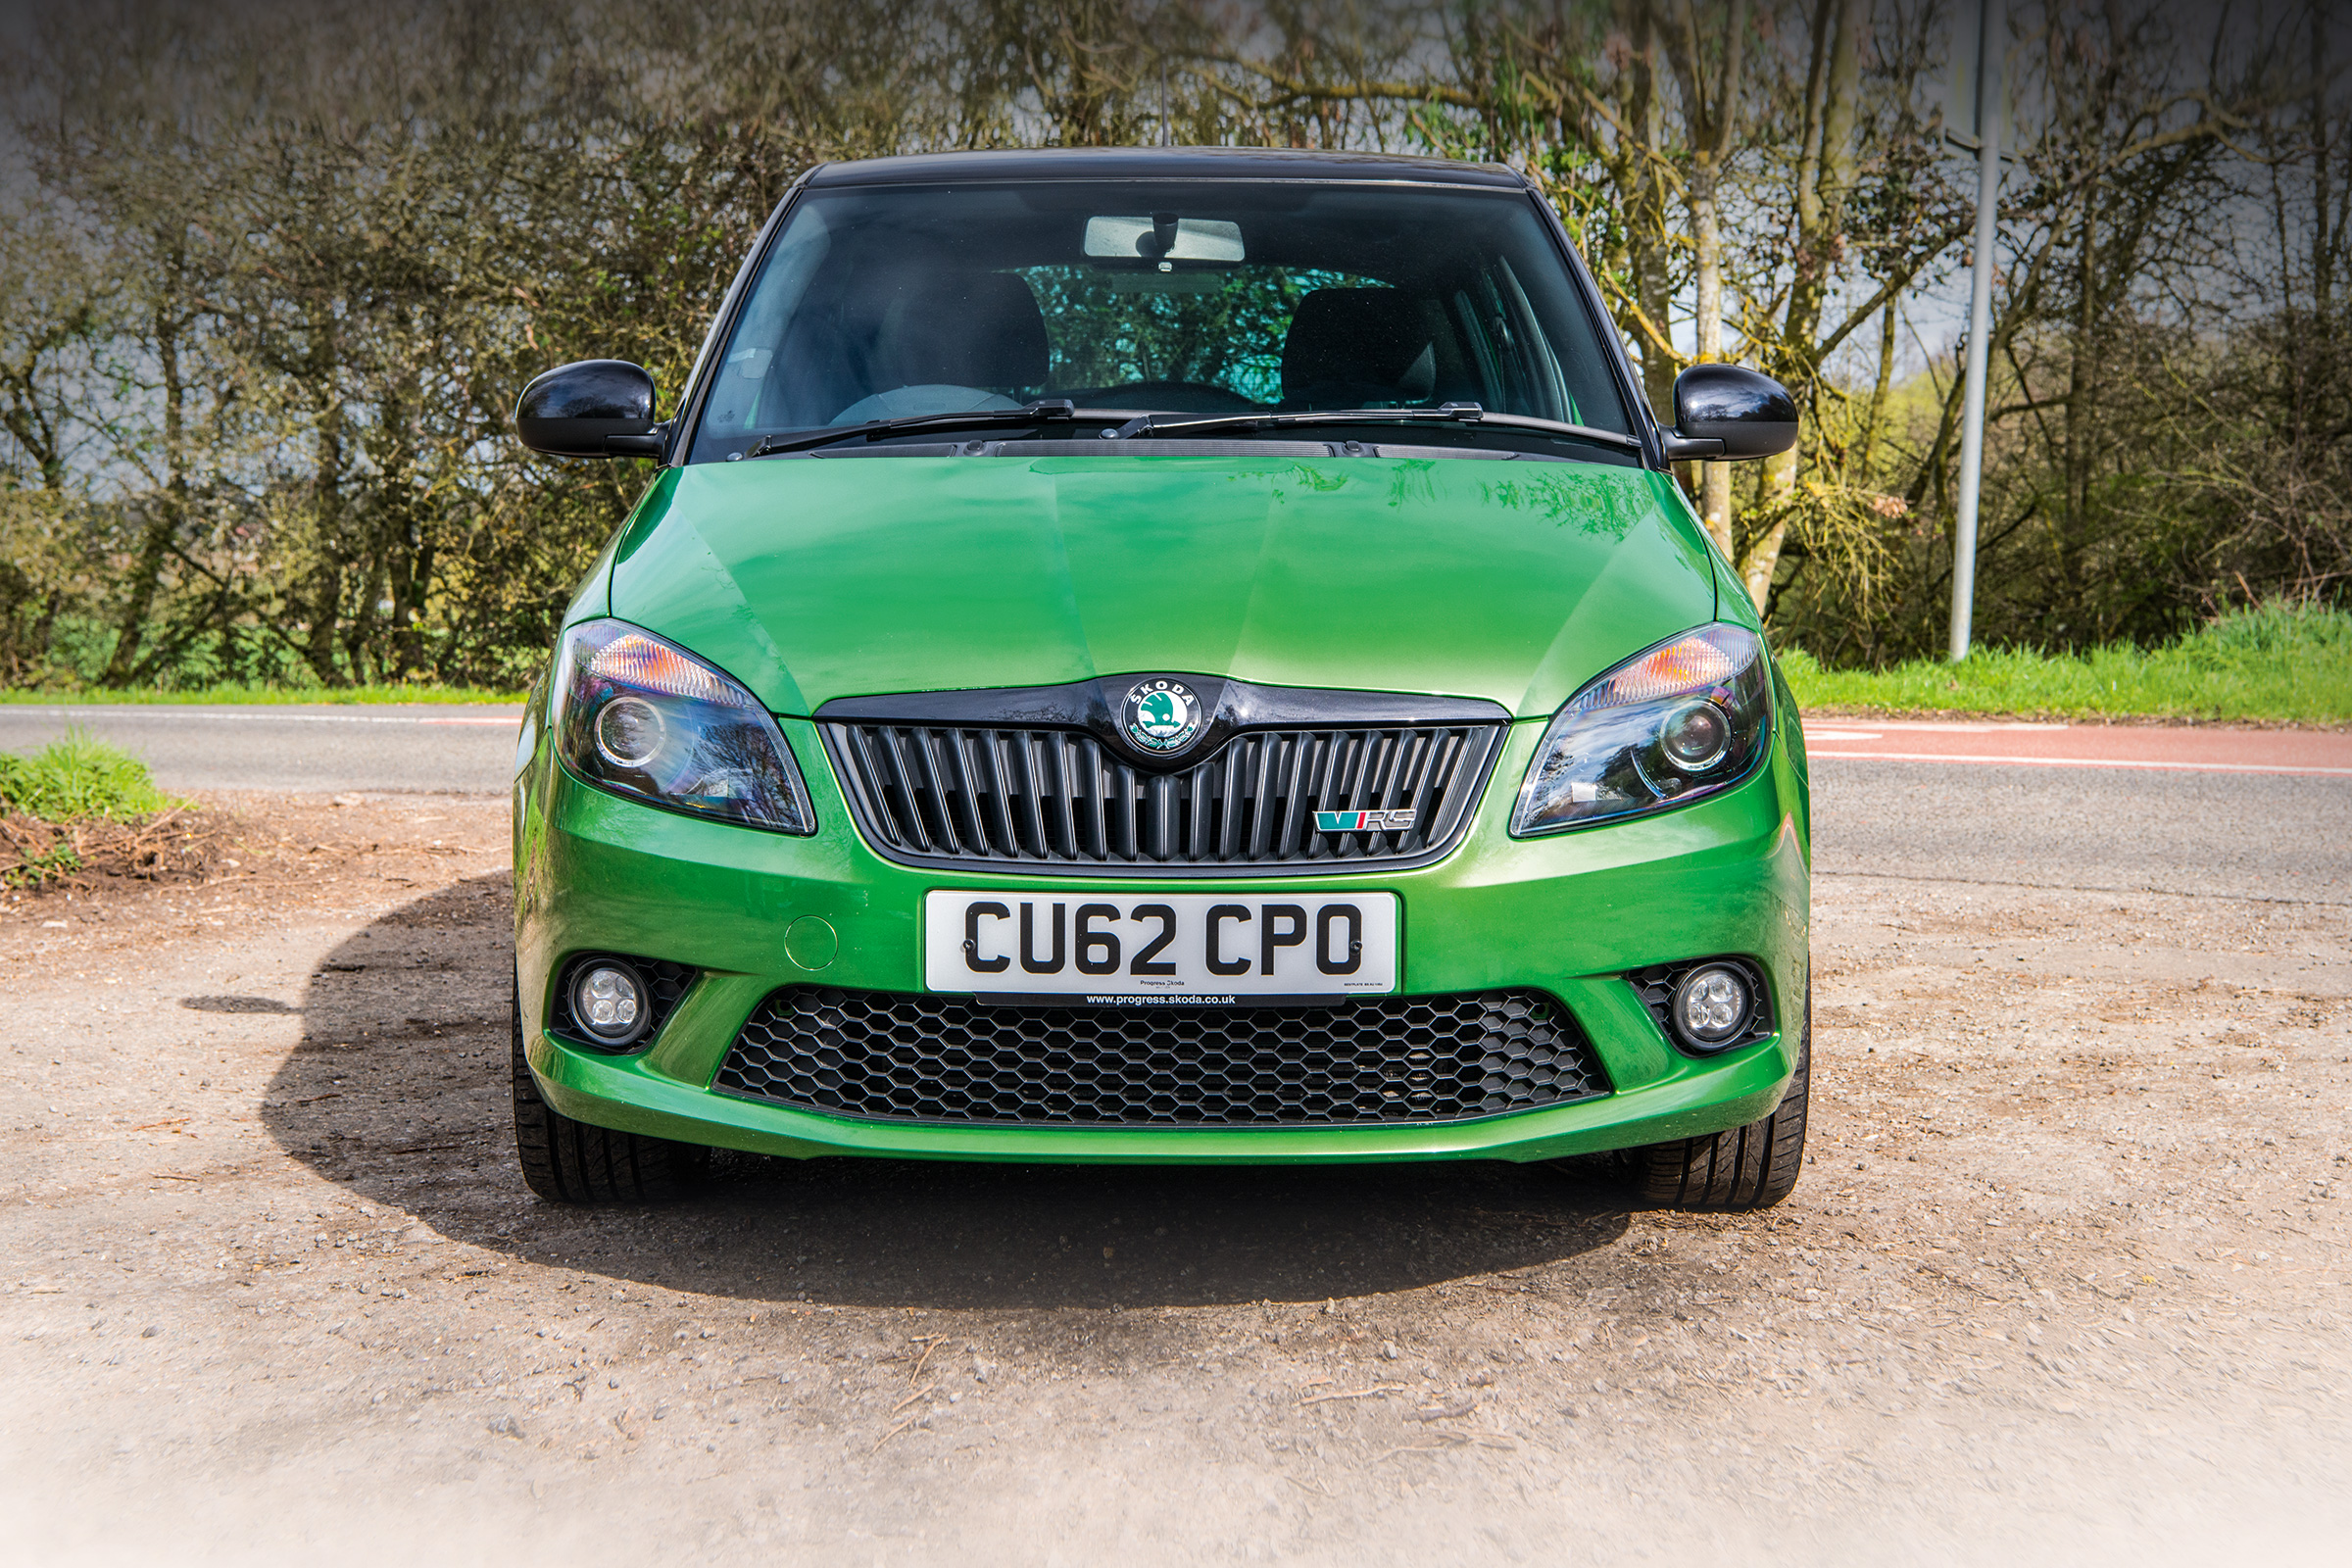 Skoda Fabia Vrs 2010 2014 Review Specs And Buying Guide Evo